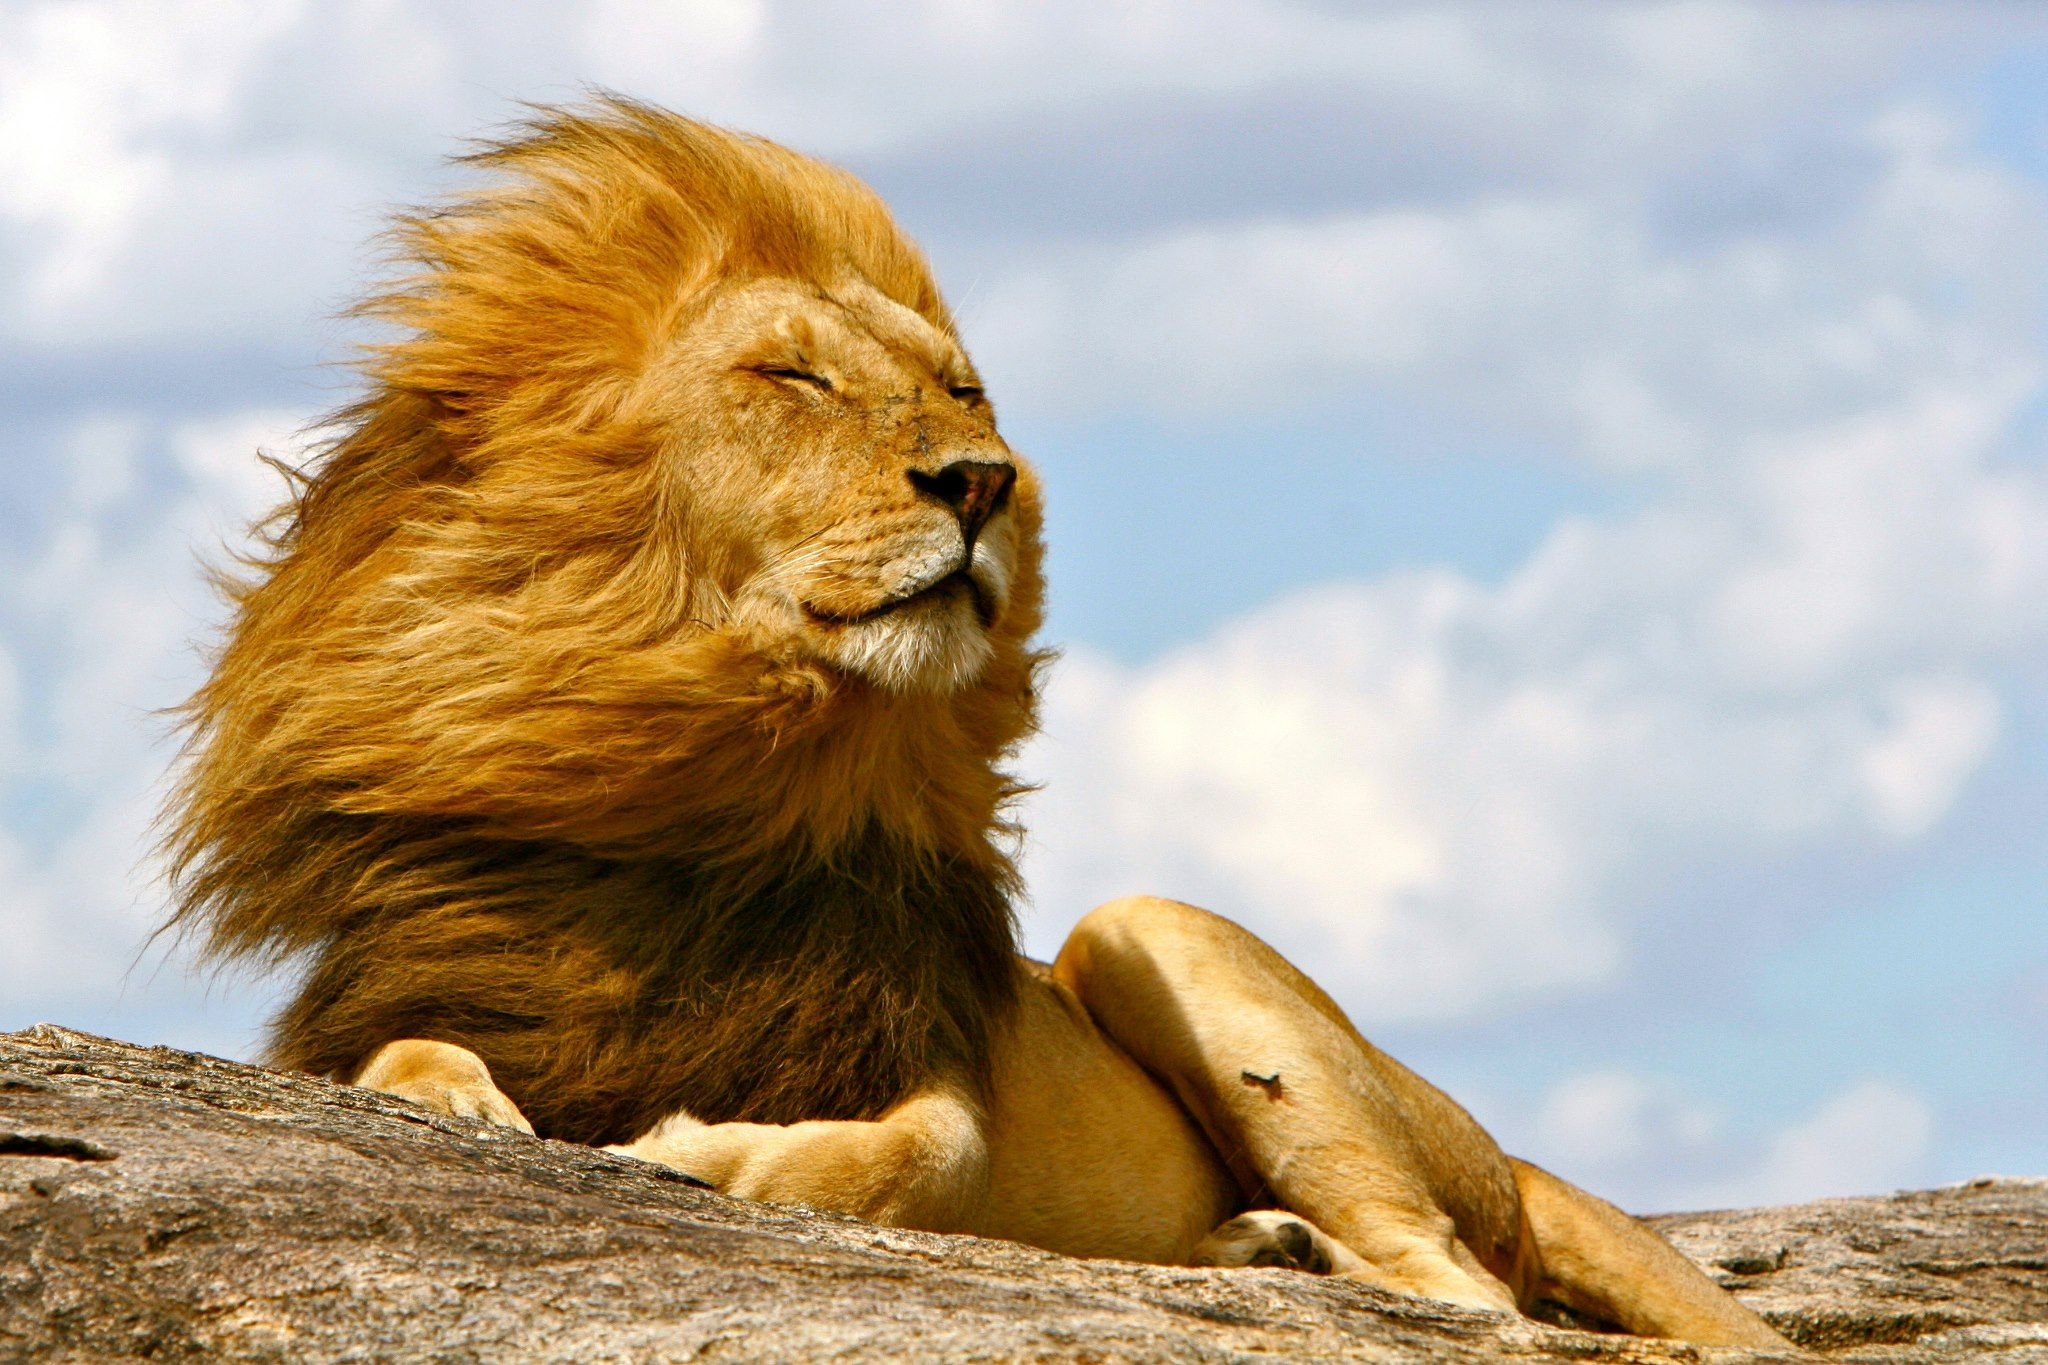 Aslan What A Majestic Looking Beast, Amazing Photo Really Captures